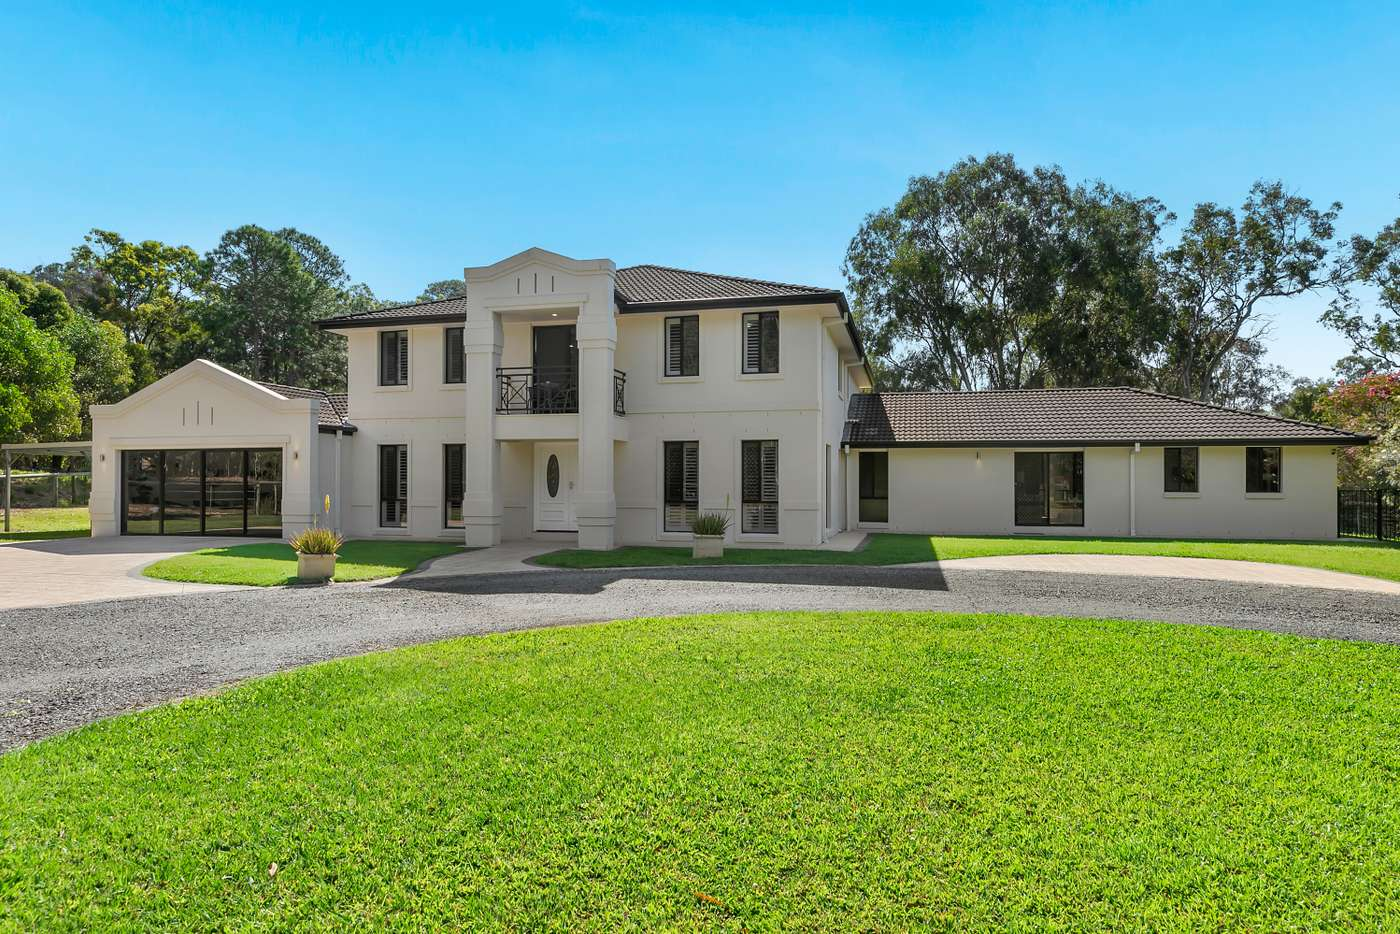 Main view of Homely house listing, 44 Pinecone Place, Thornlands QLD 4164